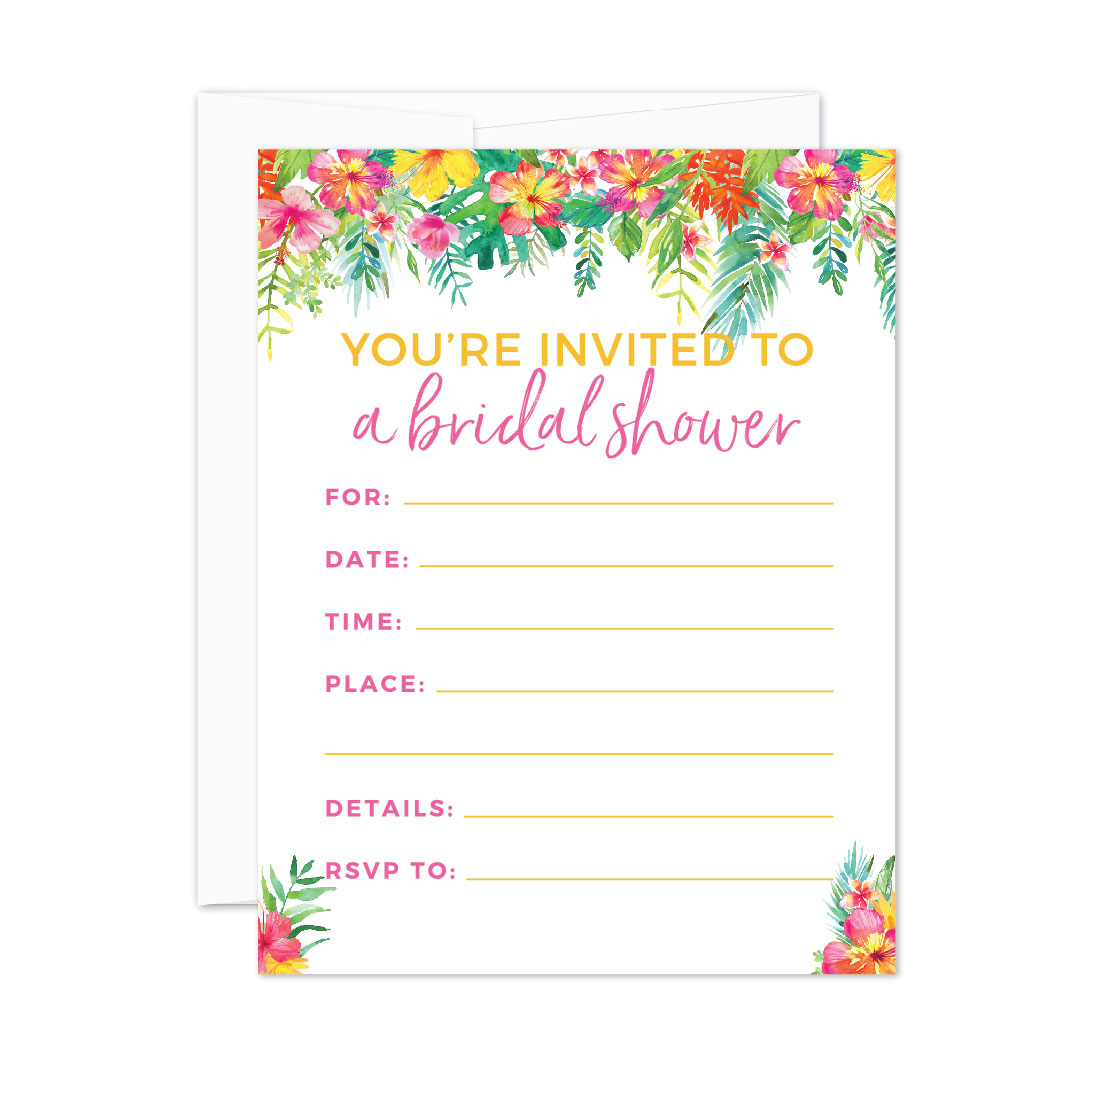 Tropical Floral Garden Party Wedding, Blank Bridal Shower Invitations with Envelopes, 20-Pack